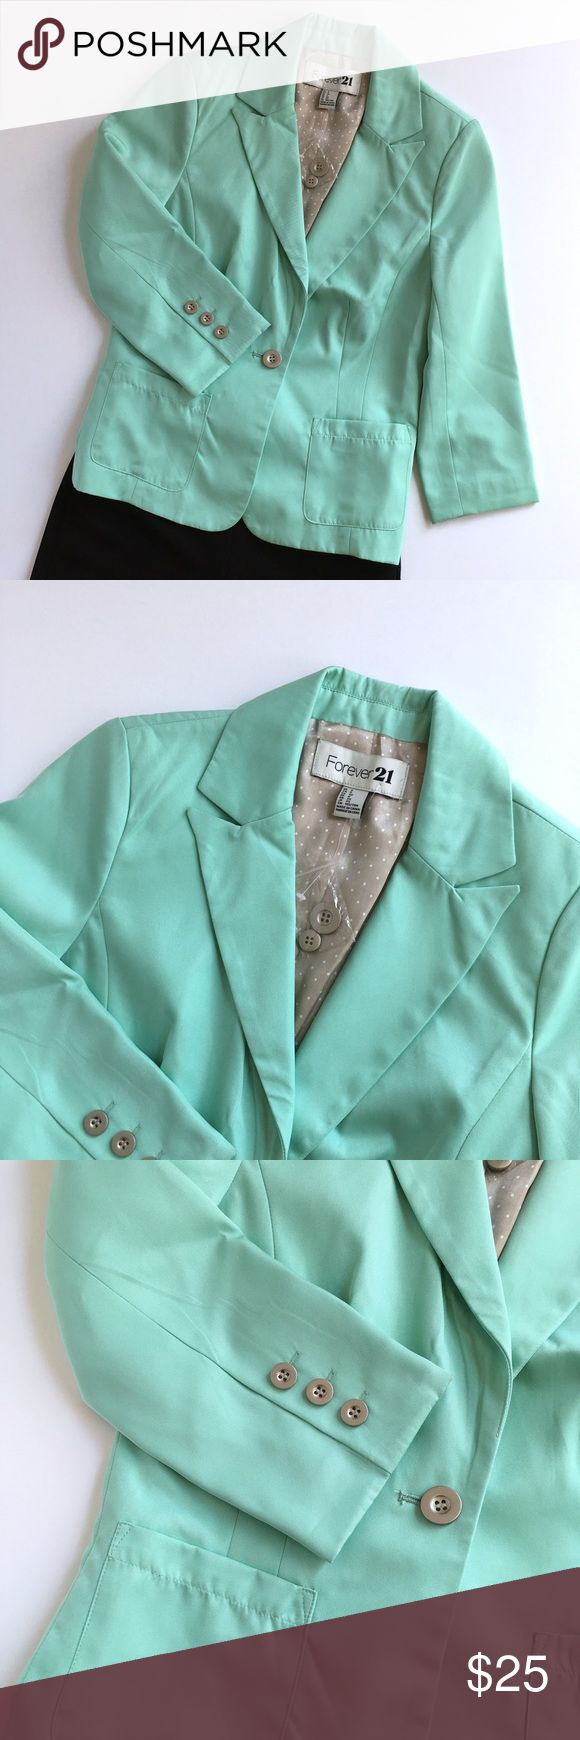 Forever 21 Mint Green Blazer *NEW without tags. Forever 21 Mint Green Blazer with 2 front pockets and polka dot lining. Forever 21 Jackets & Coats